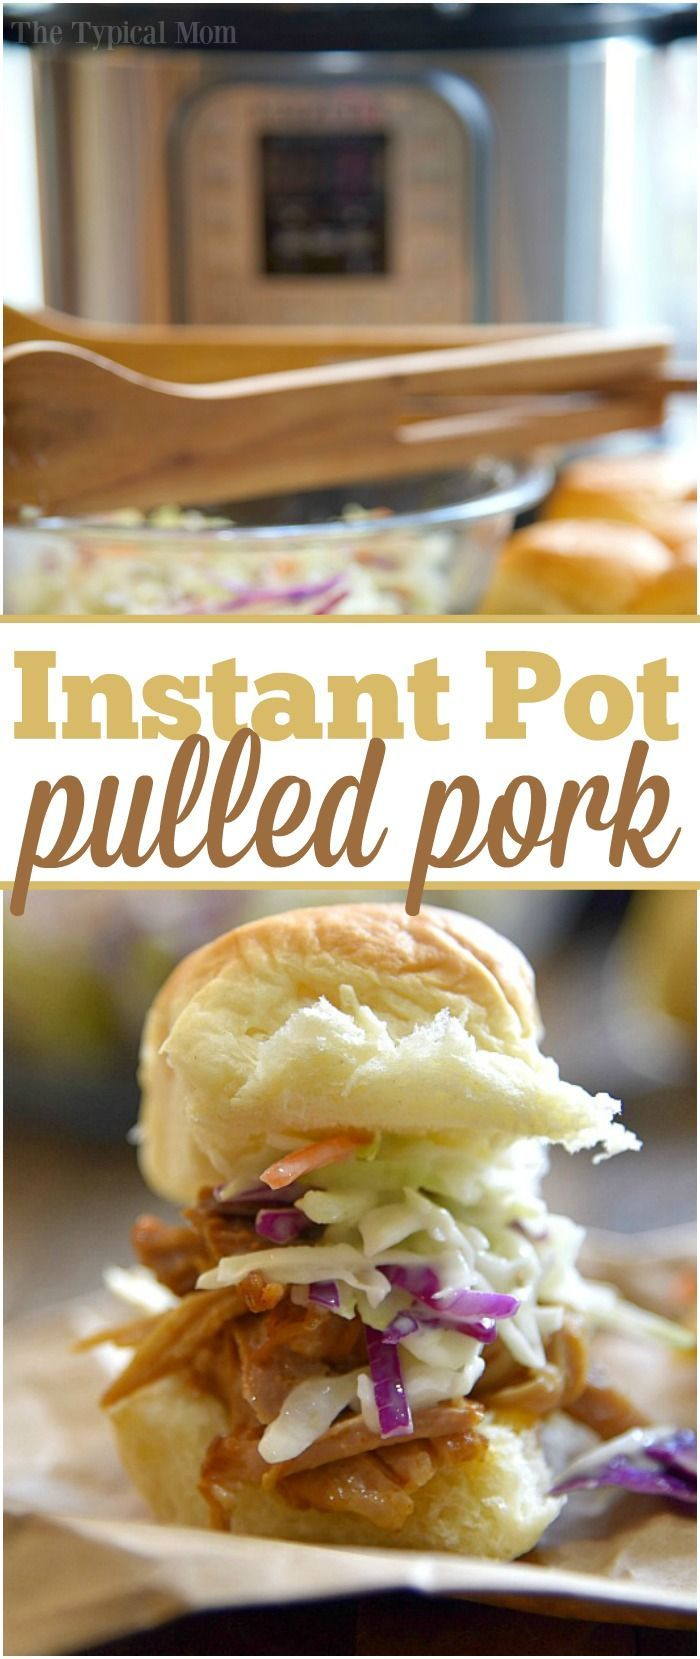 Easy Instant Pot pork shoulder recipe you will love. Amazing barbecue pulled pork sandwiches made in your pressure cooker that even my little one loves. via @thetypicalmom